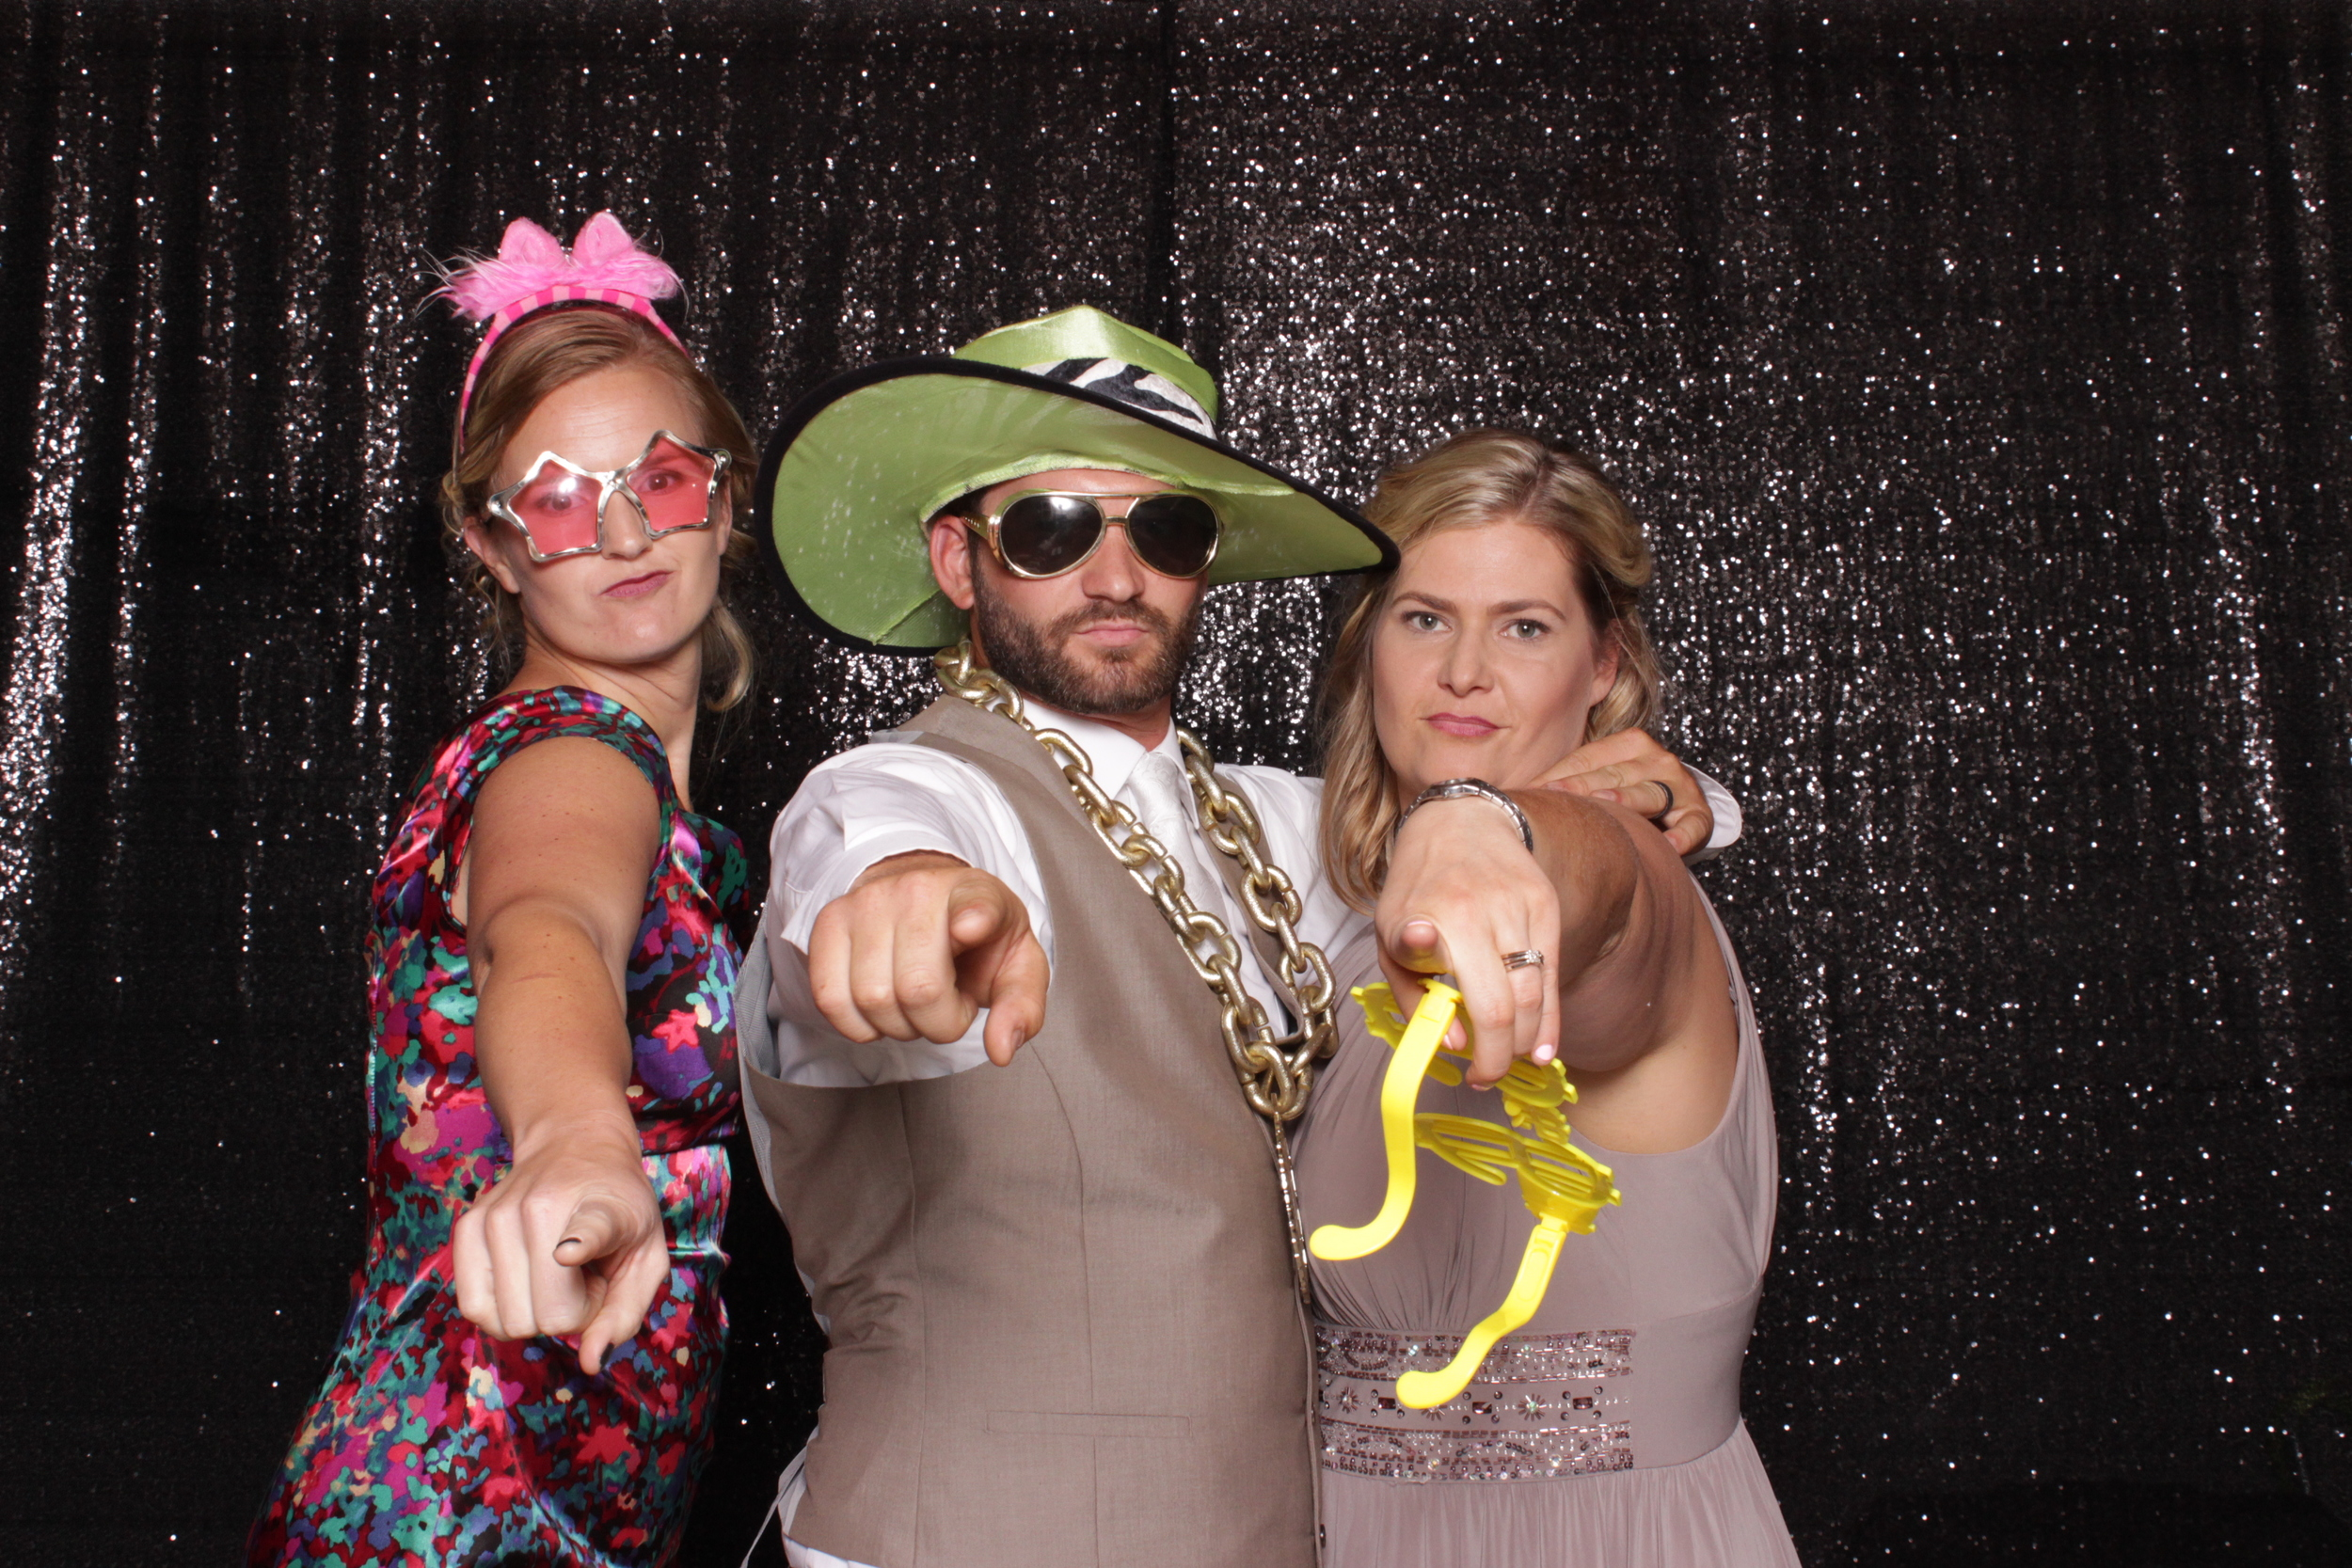 wedding-chico-open-air-photo-booth-hats